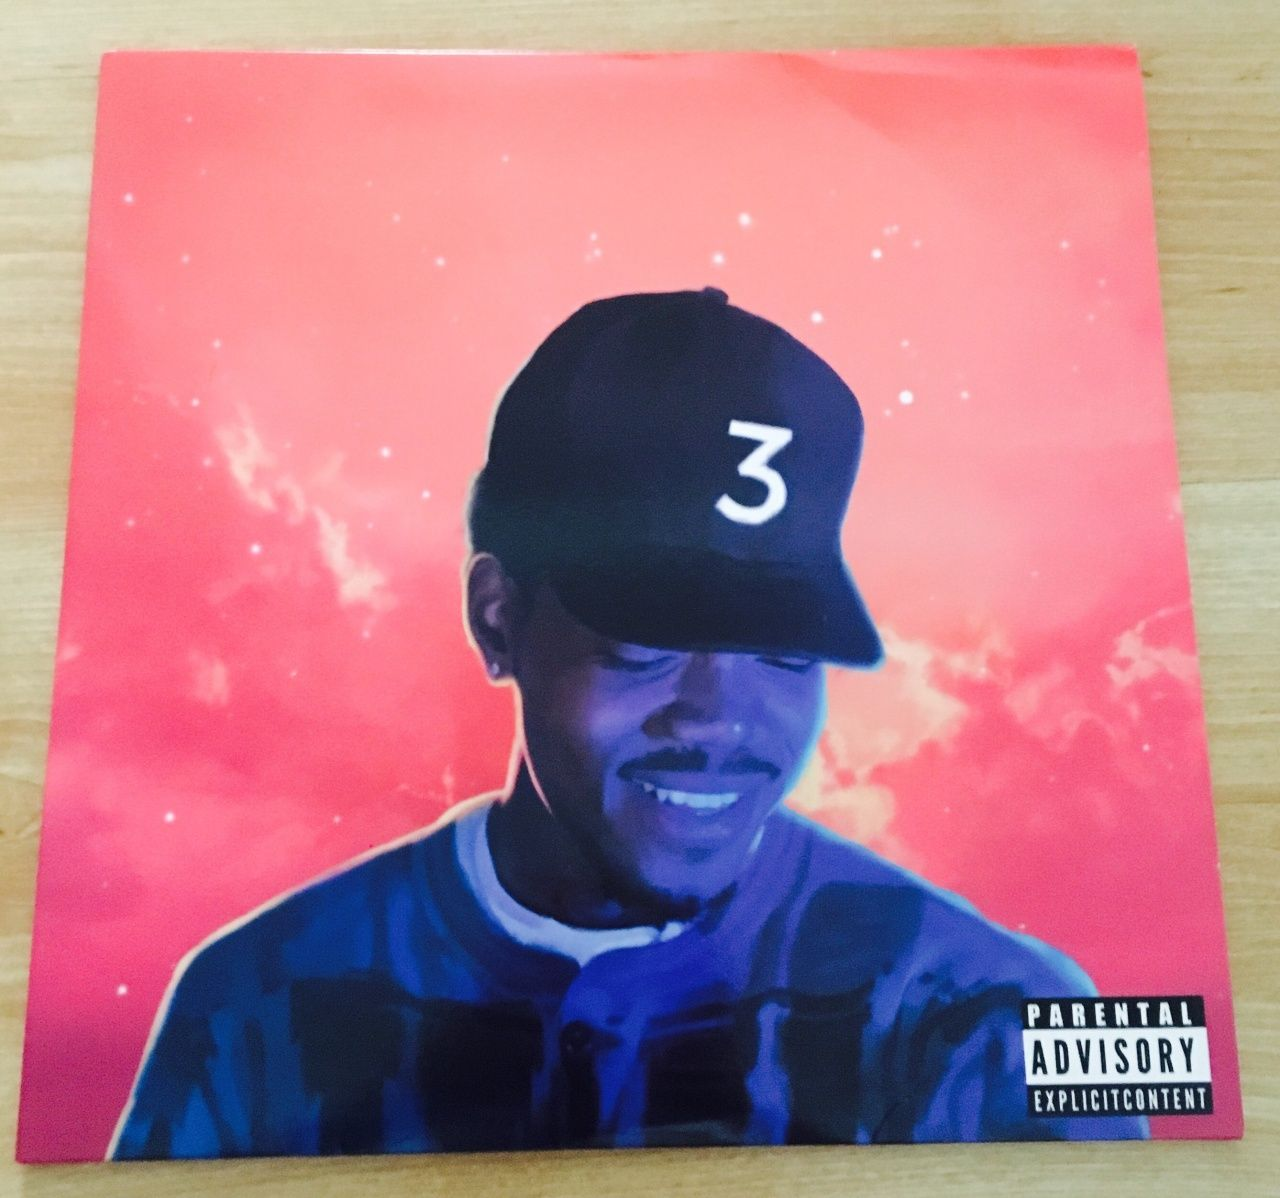 Coloring Book Chance The Rapper Vinyl In 2020 Coloring Book Chance Coloring Book Album Coloring Books